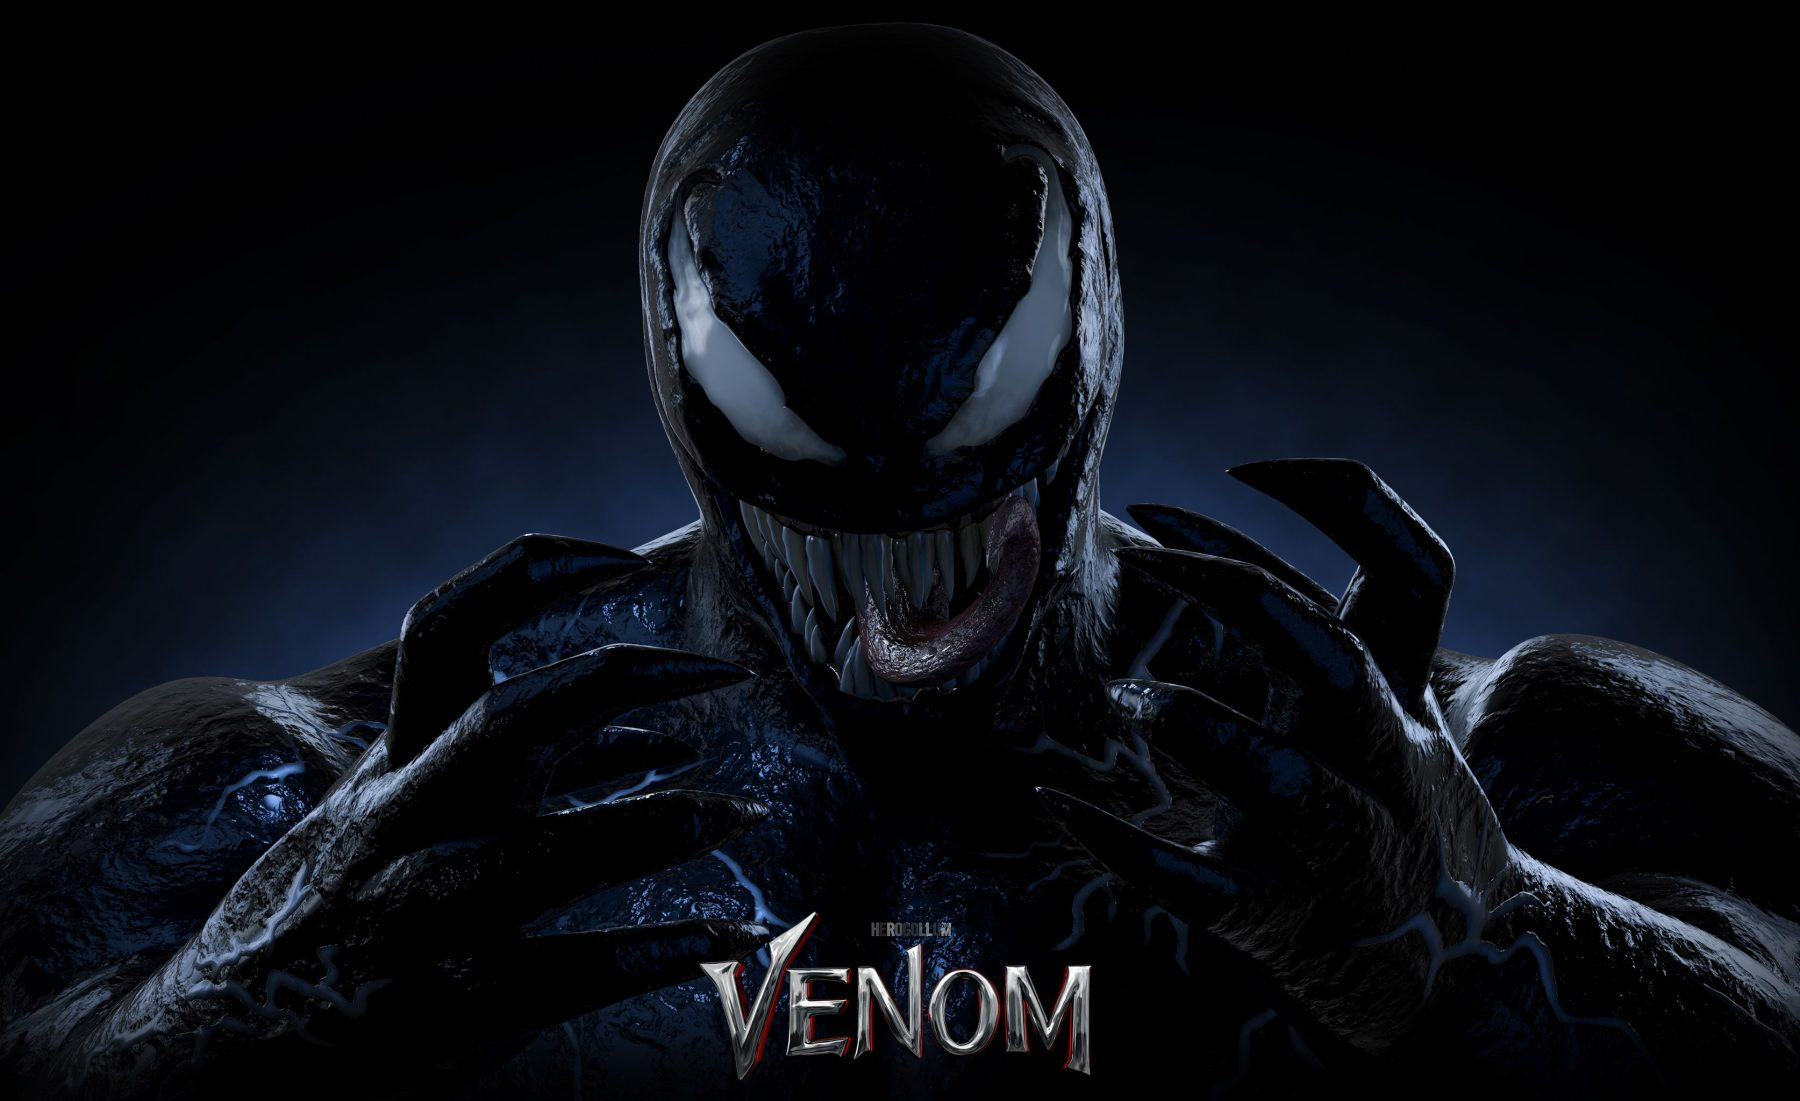 Venom Wallpaper For Iphone 7 Many Hd Wallpaper